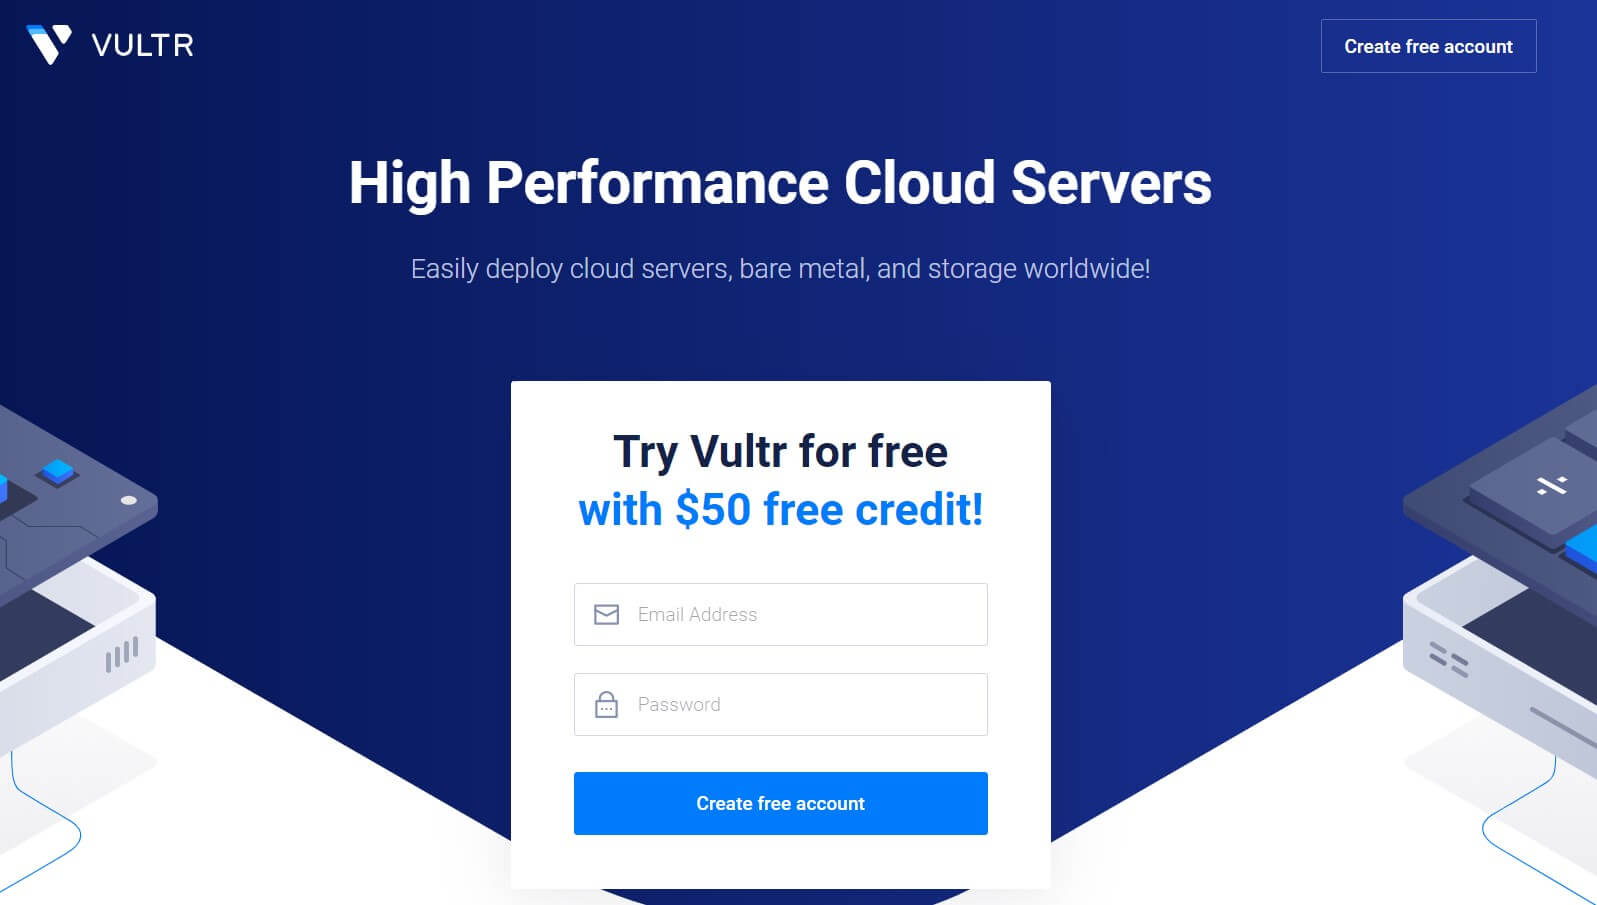 Try Vultr for free with $50 free credit!